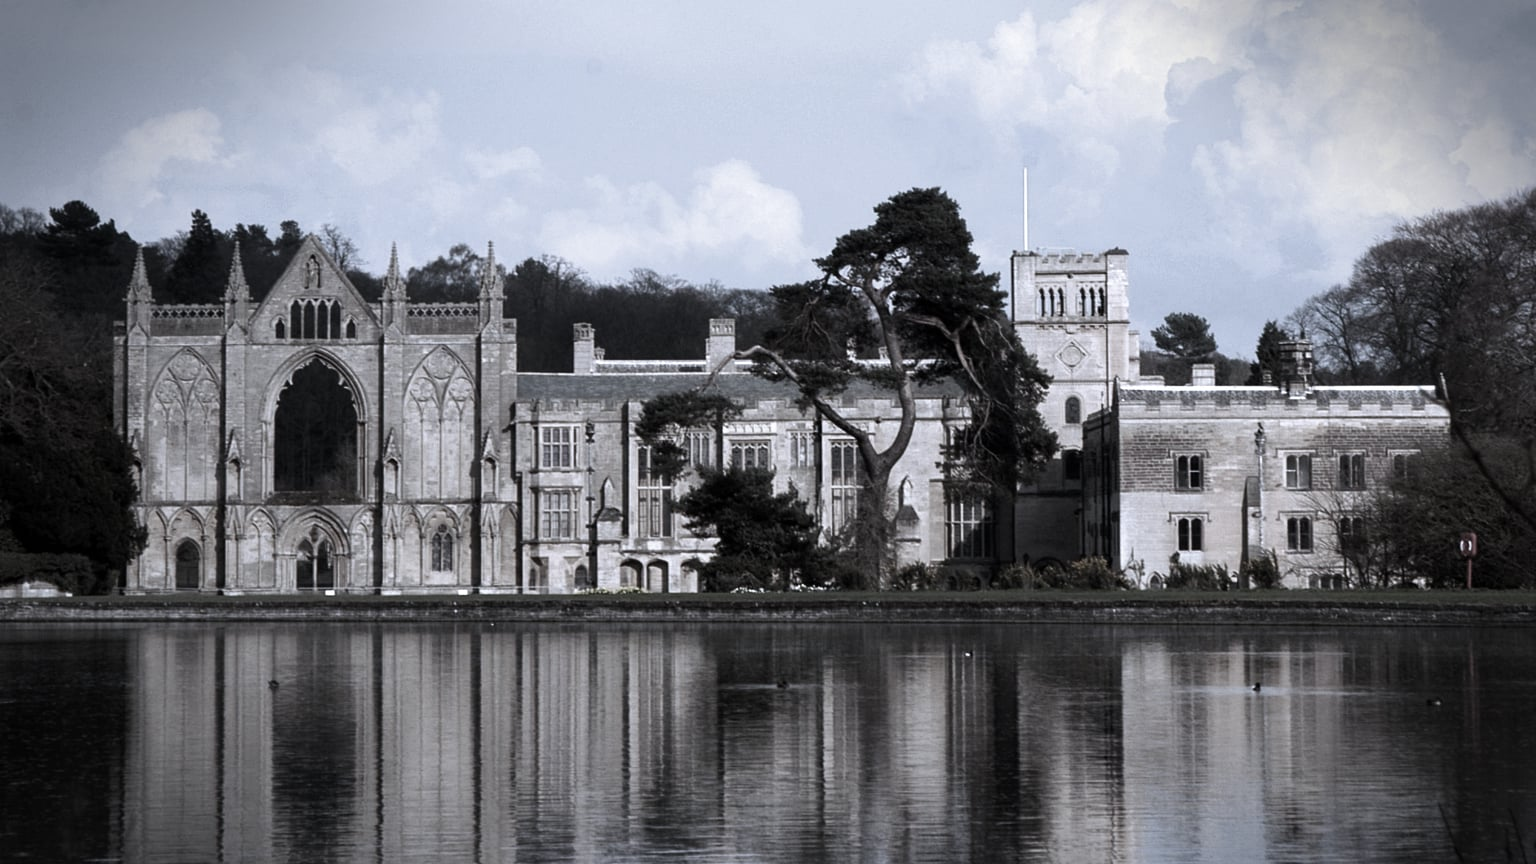 5) Newstead Abbey, Nottinghamshire - Free entry with National Art Pass